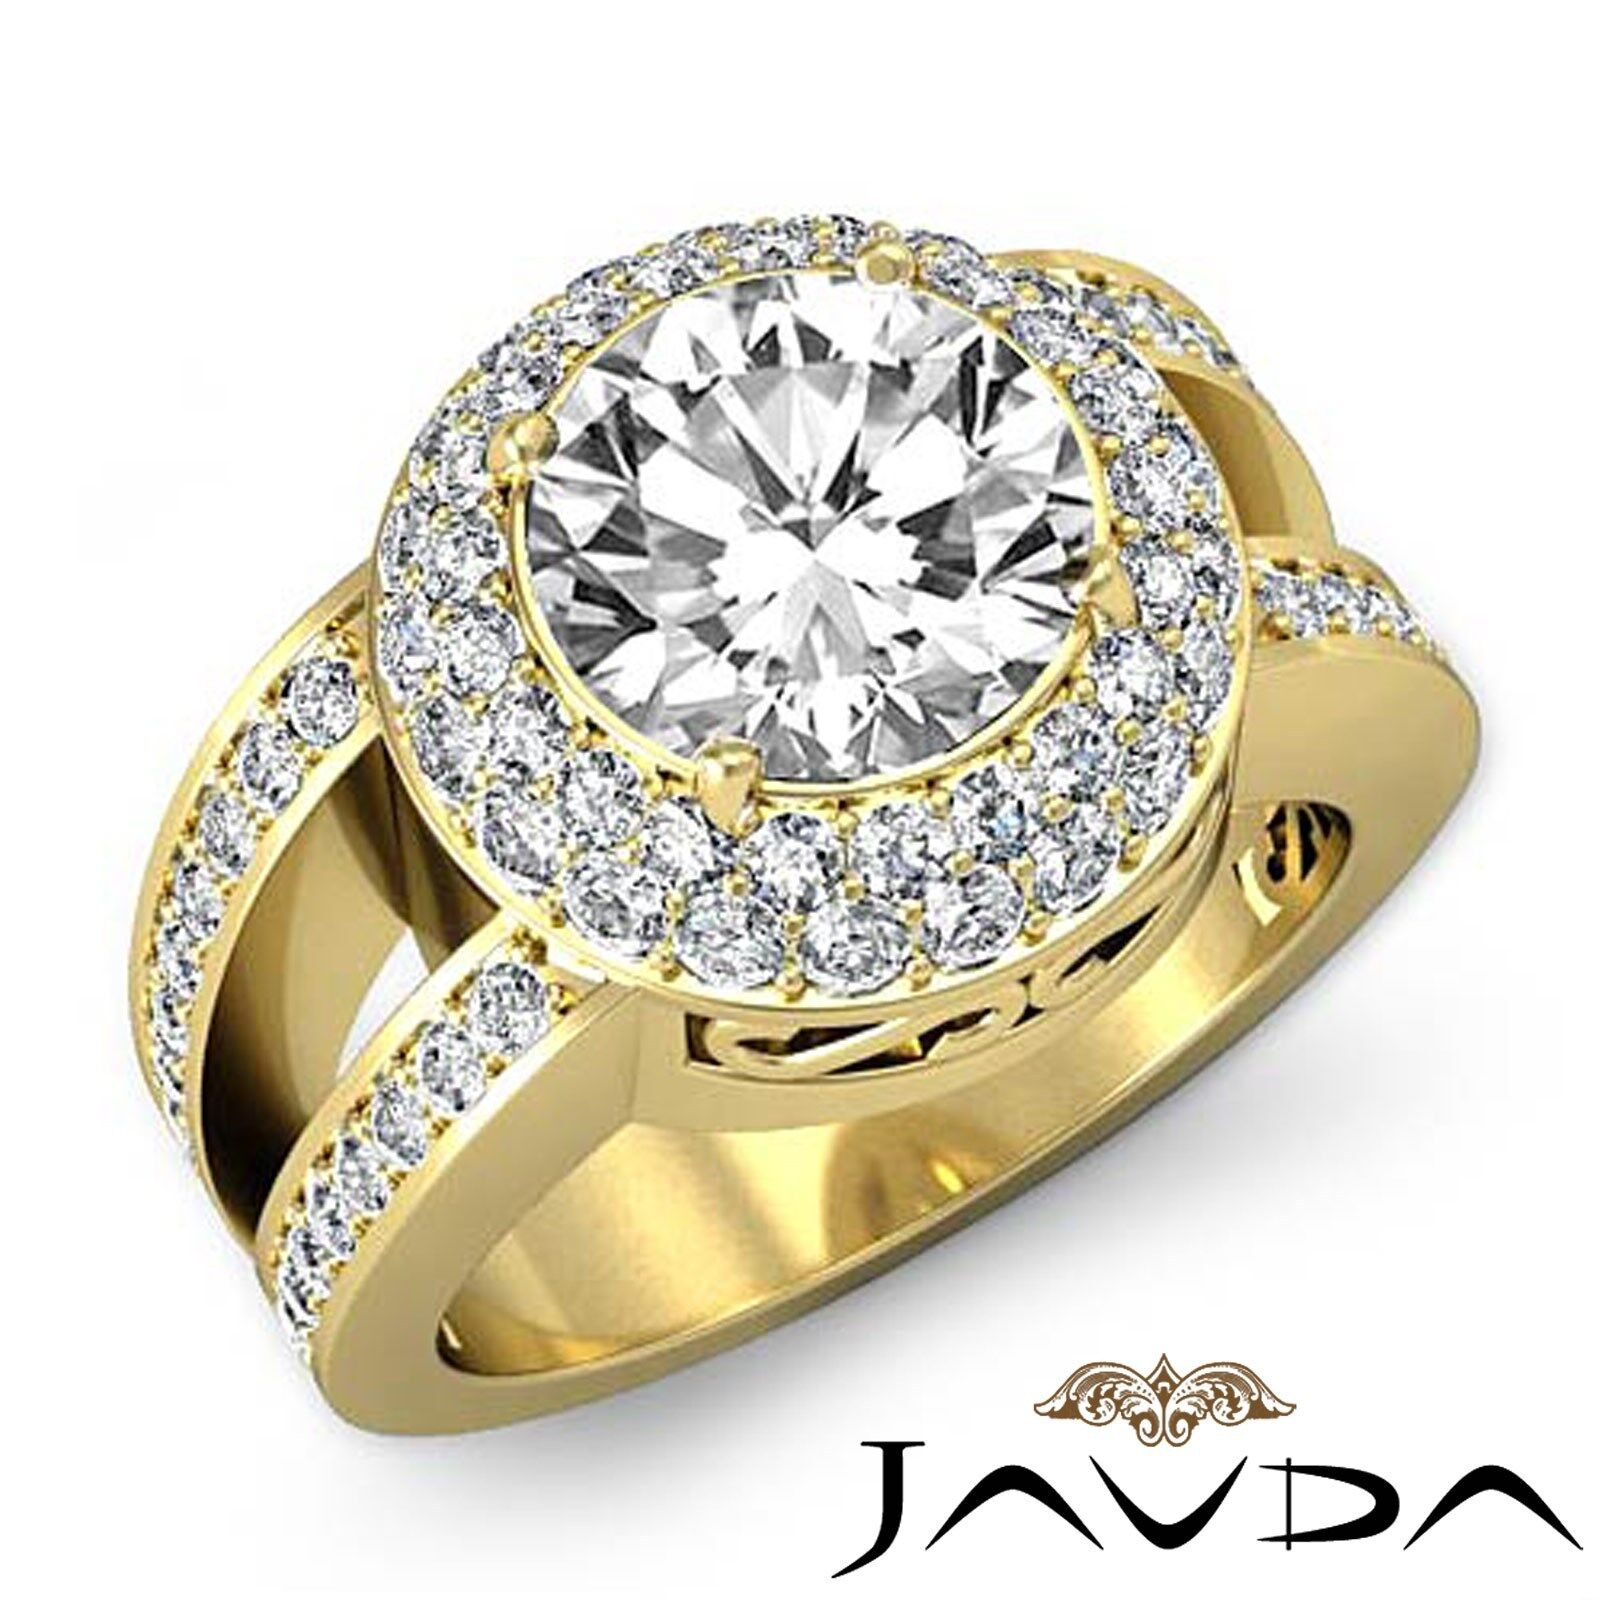 Double Halo Split Shank Round Diamond Engagement Pave Set Ring GIA G VS1 2.85 Ct